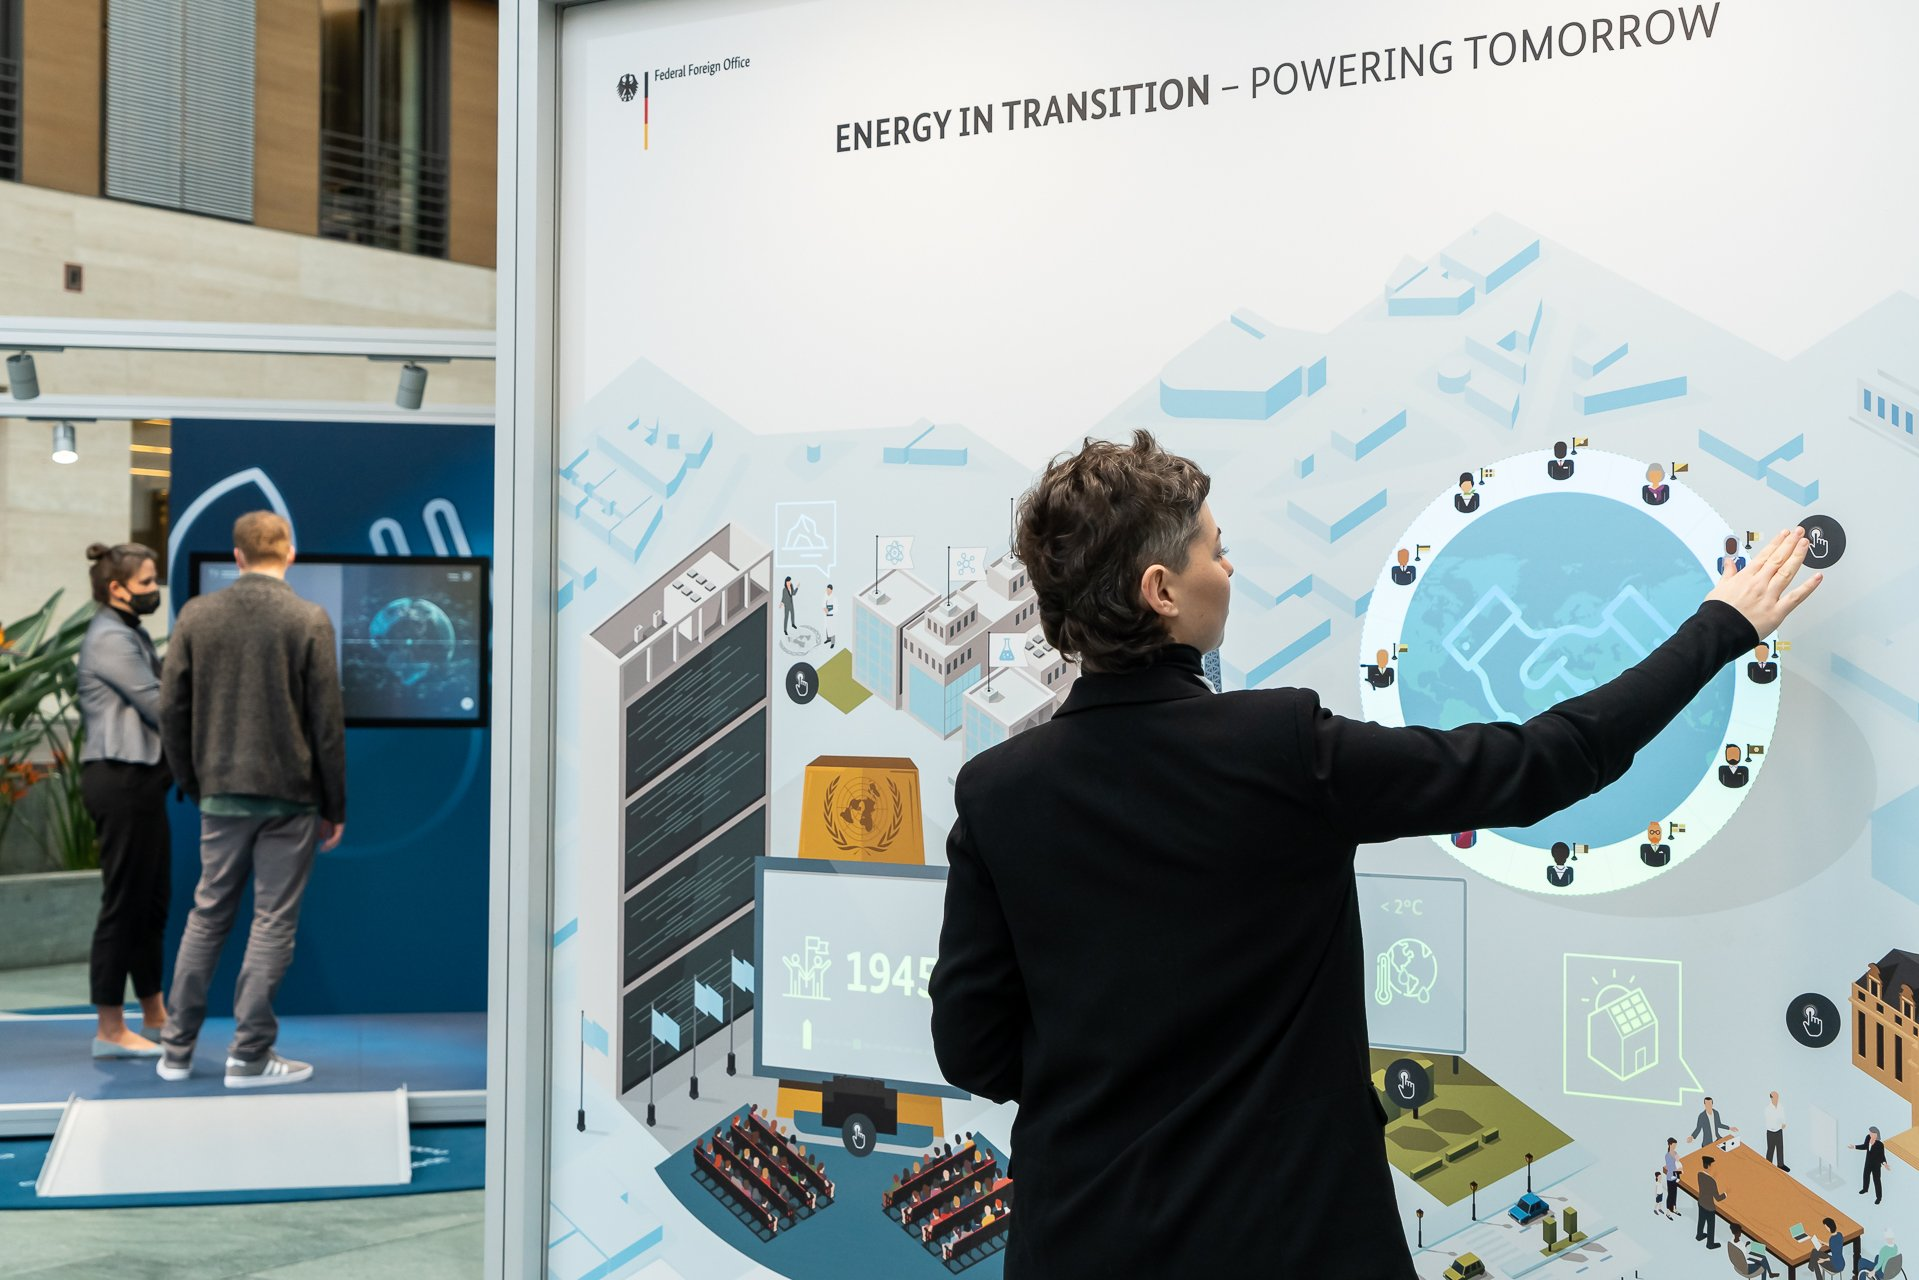 A woman stands at the Energy in Transition station of the exhibition and starts up the animation. In the background a woman and a man are standing in front of a monitor at the Renewable Energy station.